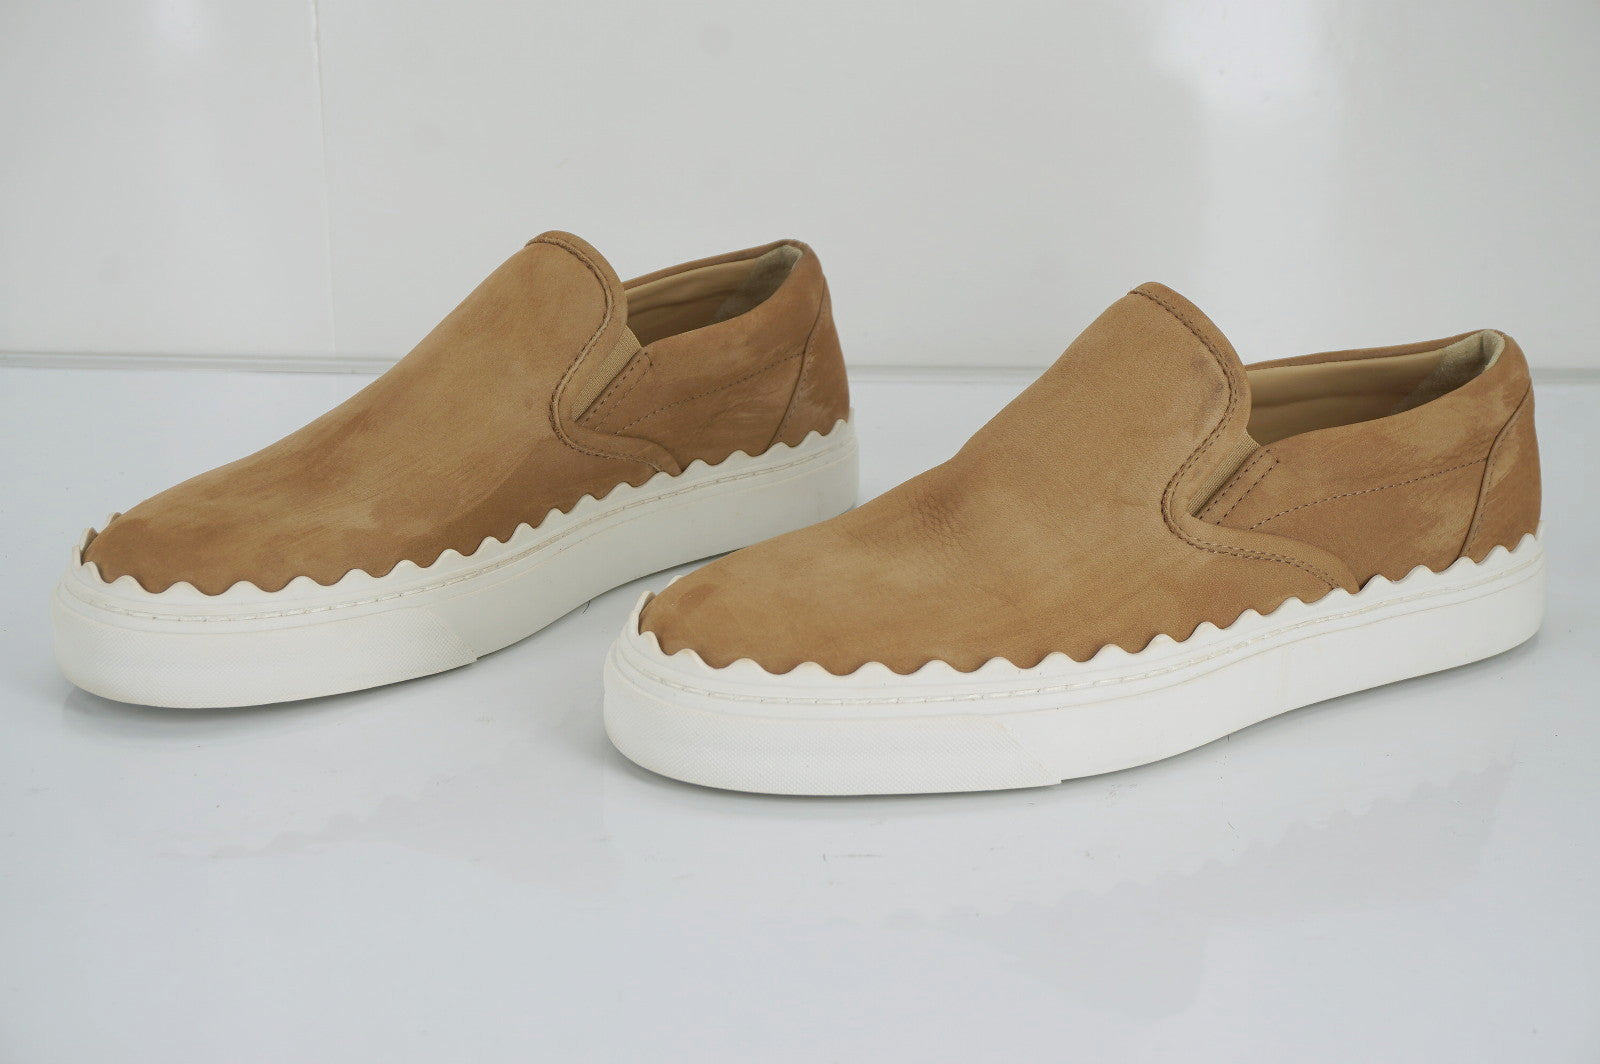 Chloe Brown Suede Leather Ivy Waves Scalloped Skate Sneakers SZ 40 10 New $520